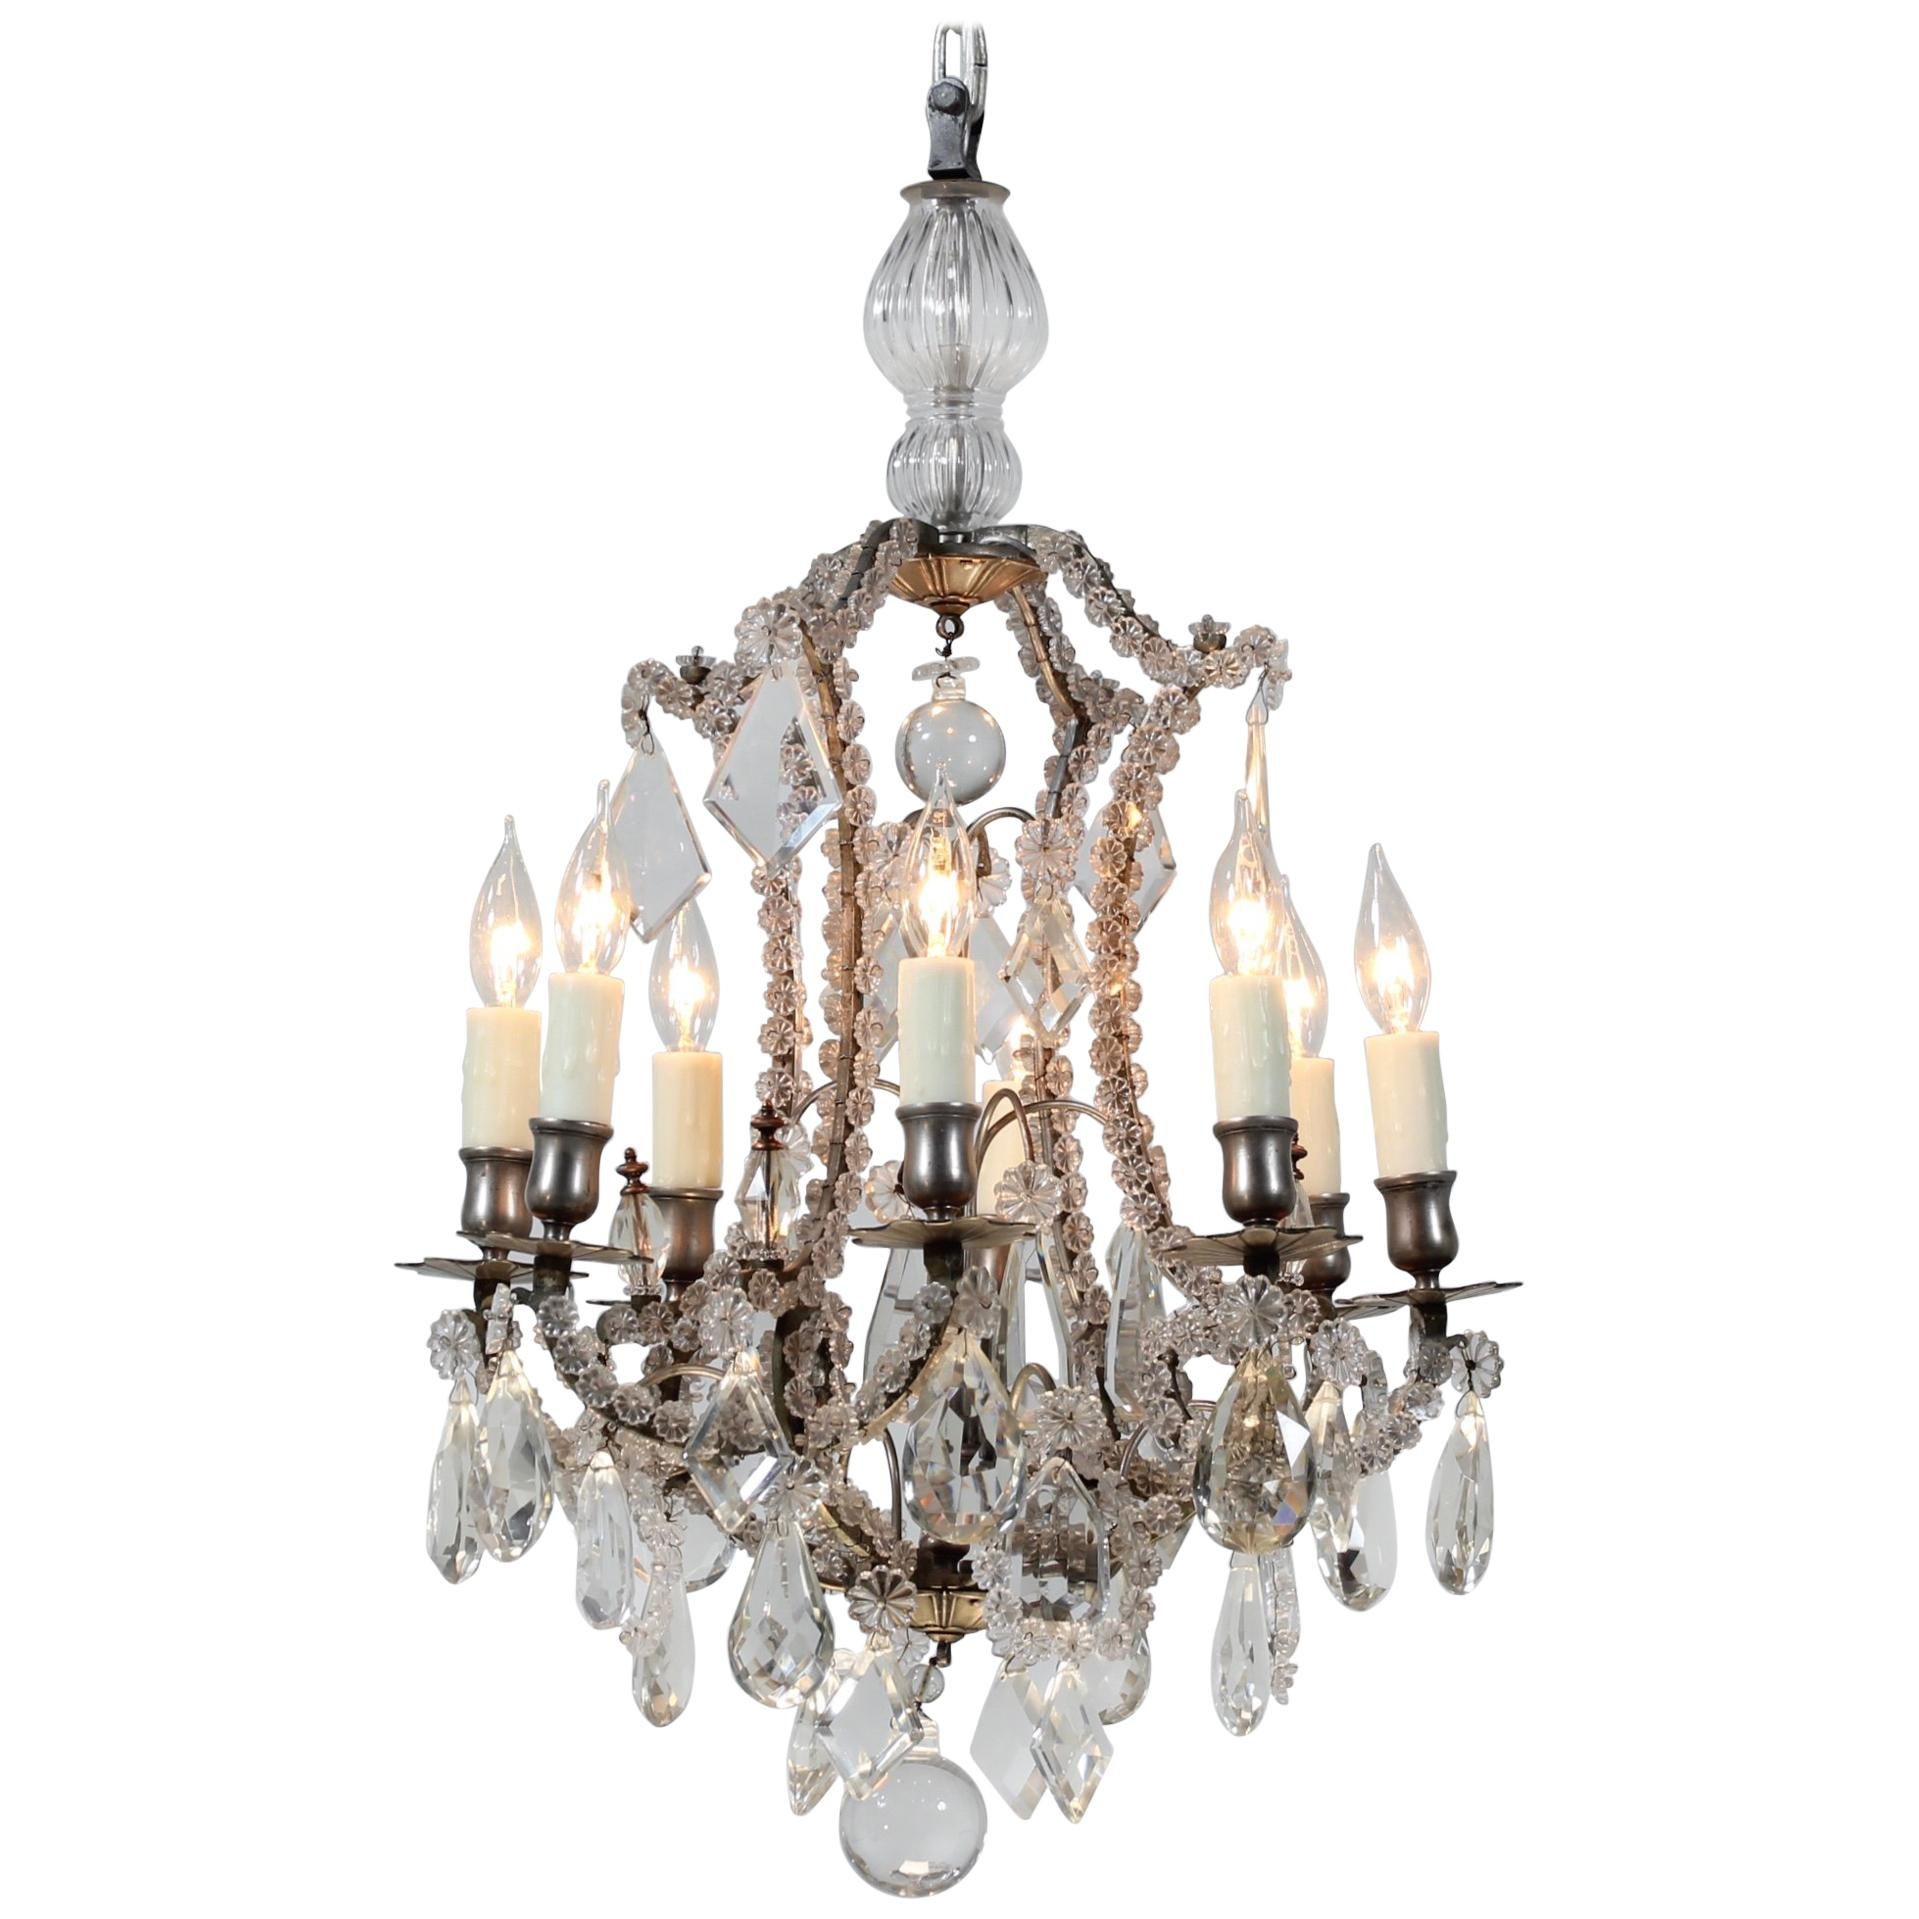 French 1920s Crystal Chandelier